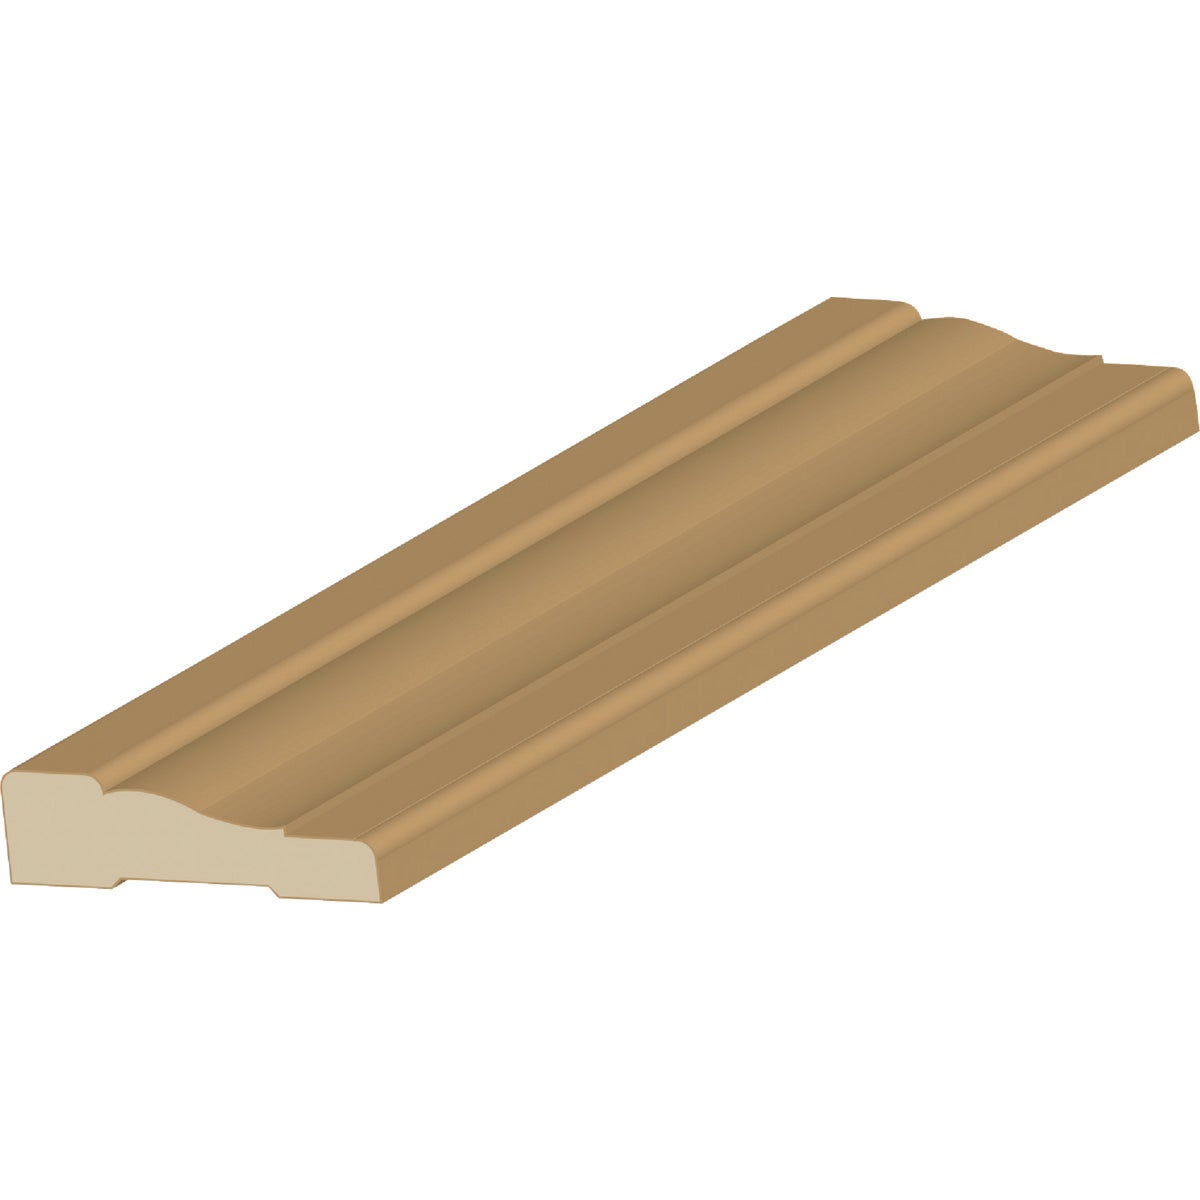 WM356 12' COL CASING - 35612PCRA by Jim White Millwork